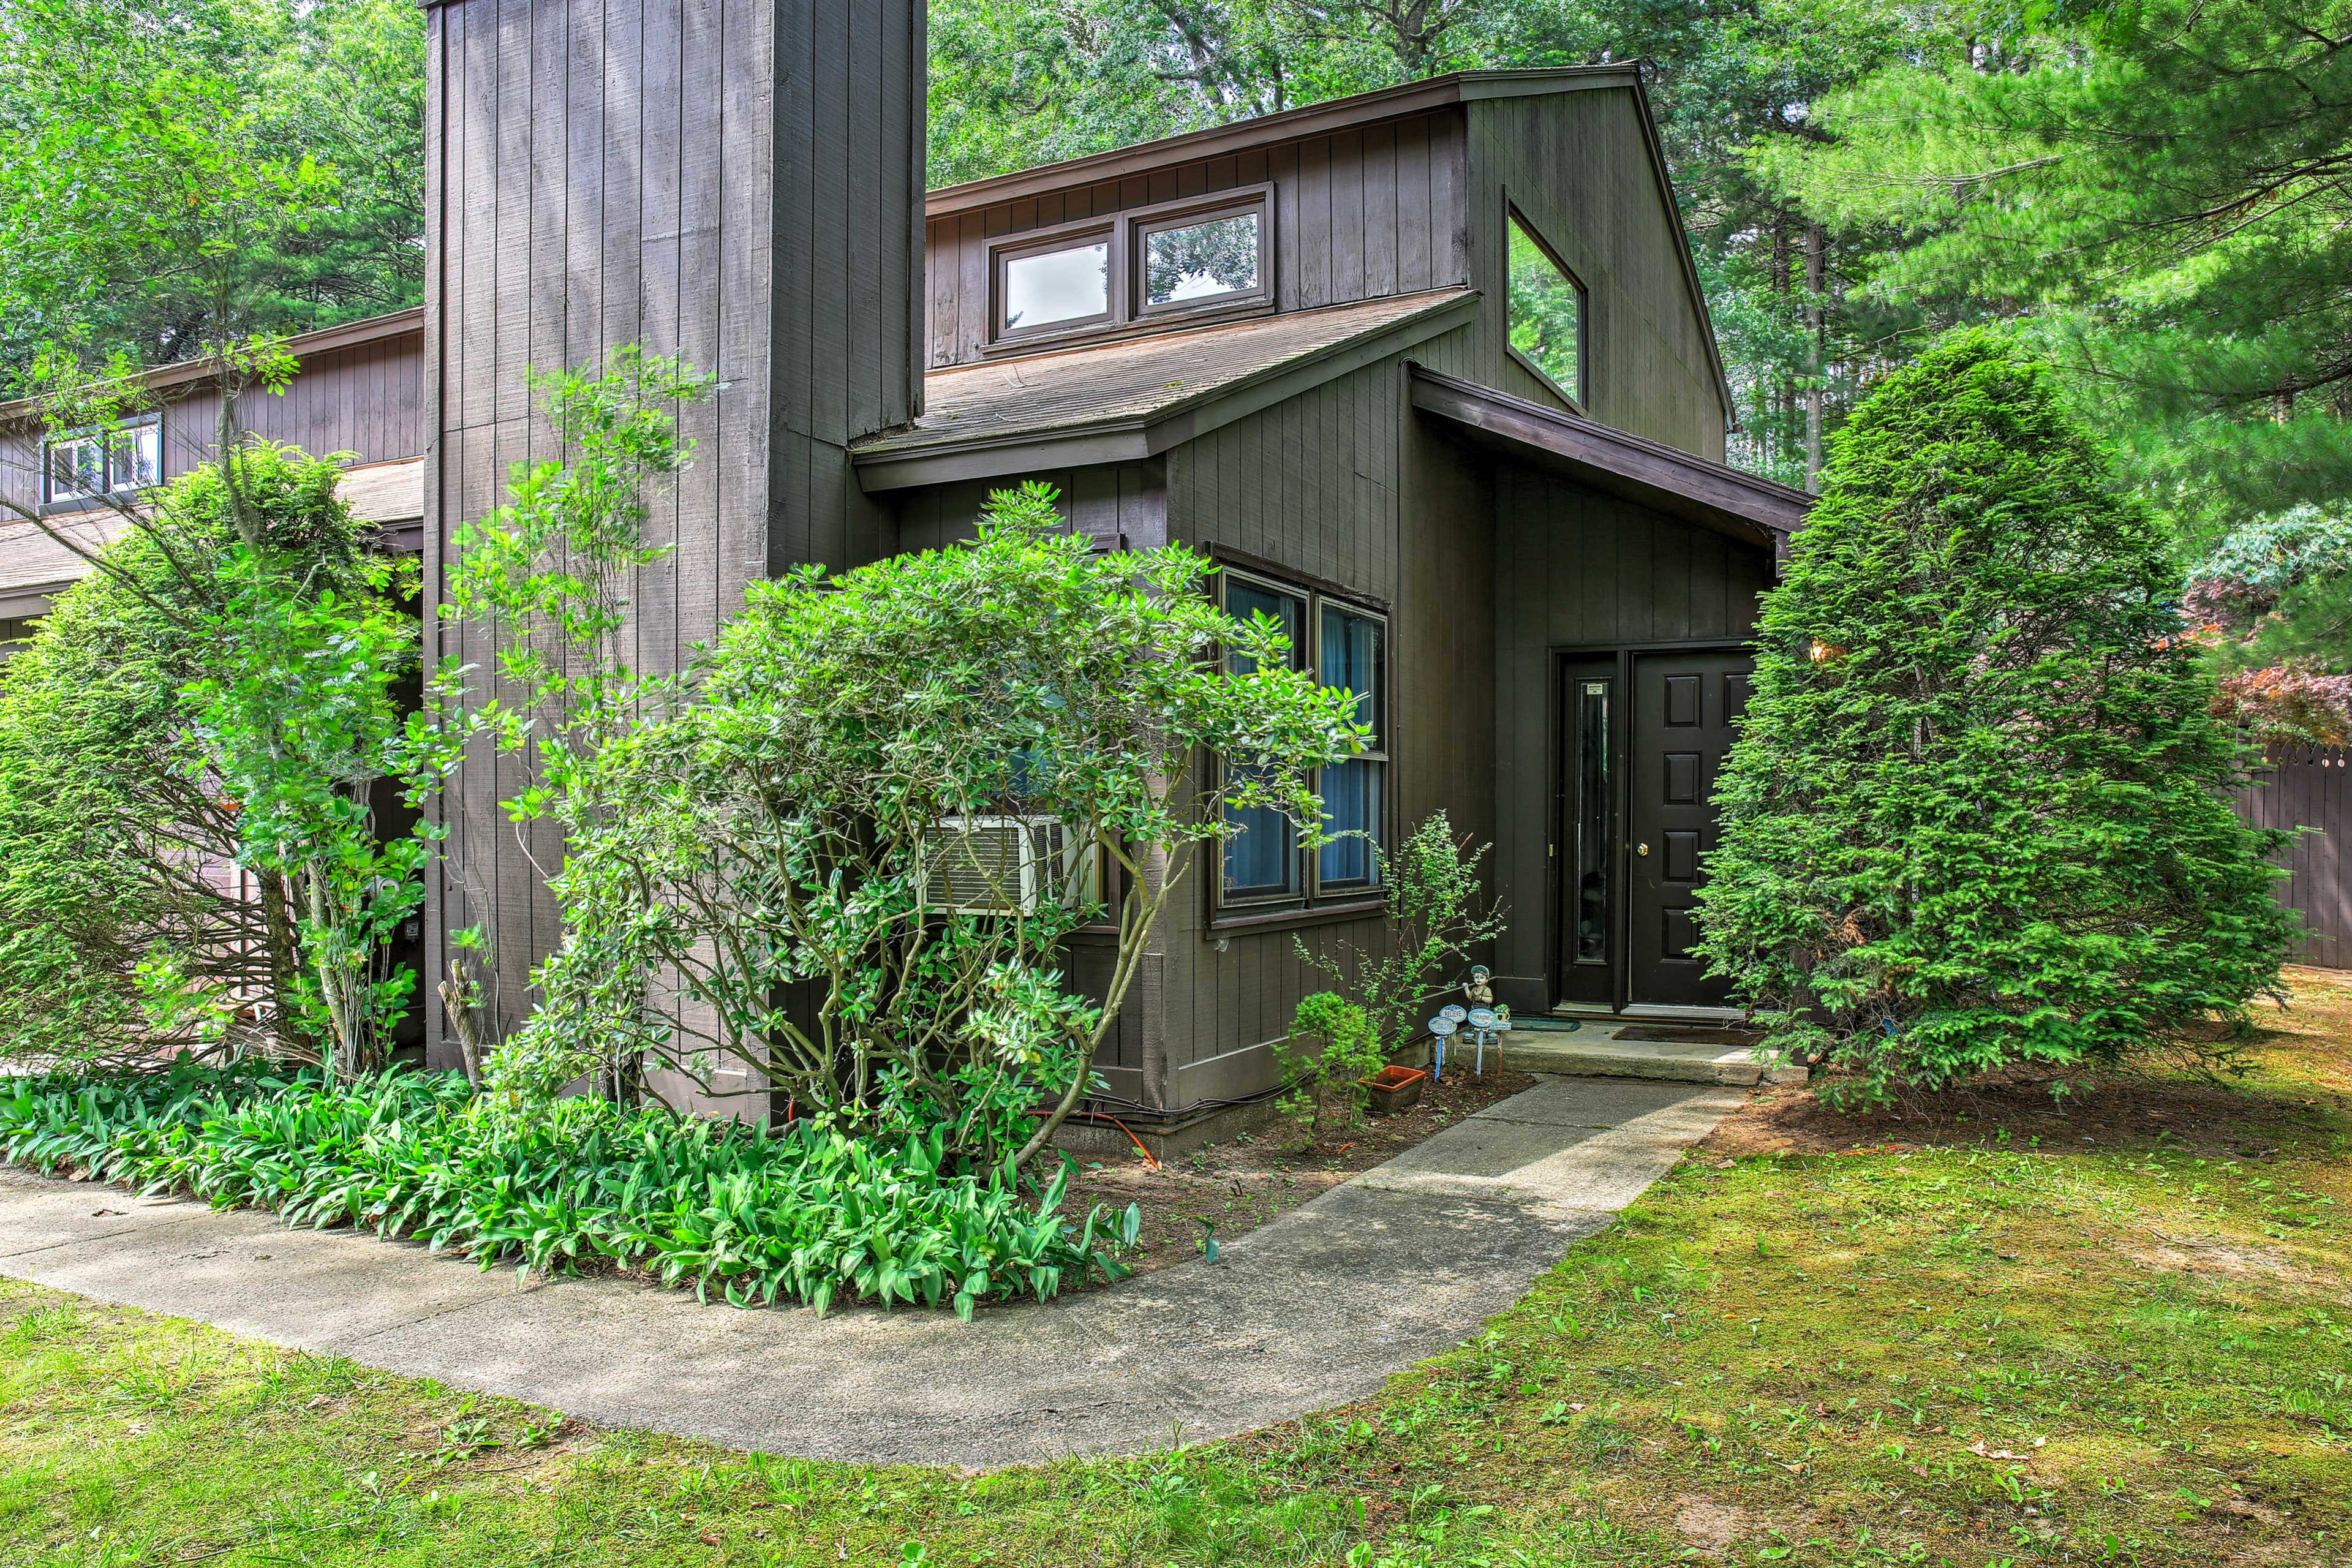 Your New York country getaway begins here, at this homey 2-bedroom, 1.5-bathroom vacation rental townhome that comfortably accommodates 5 guests.